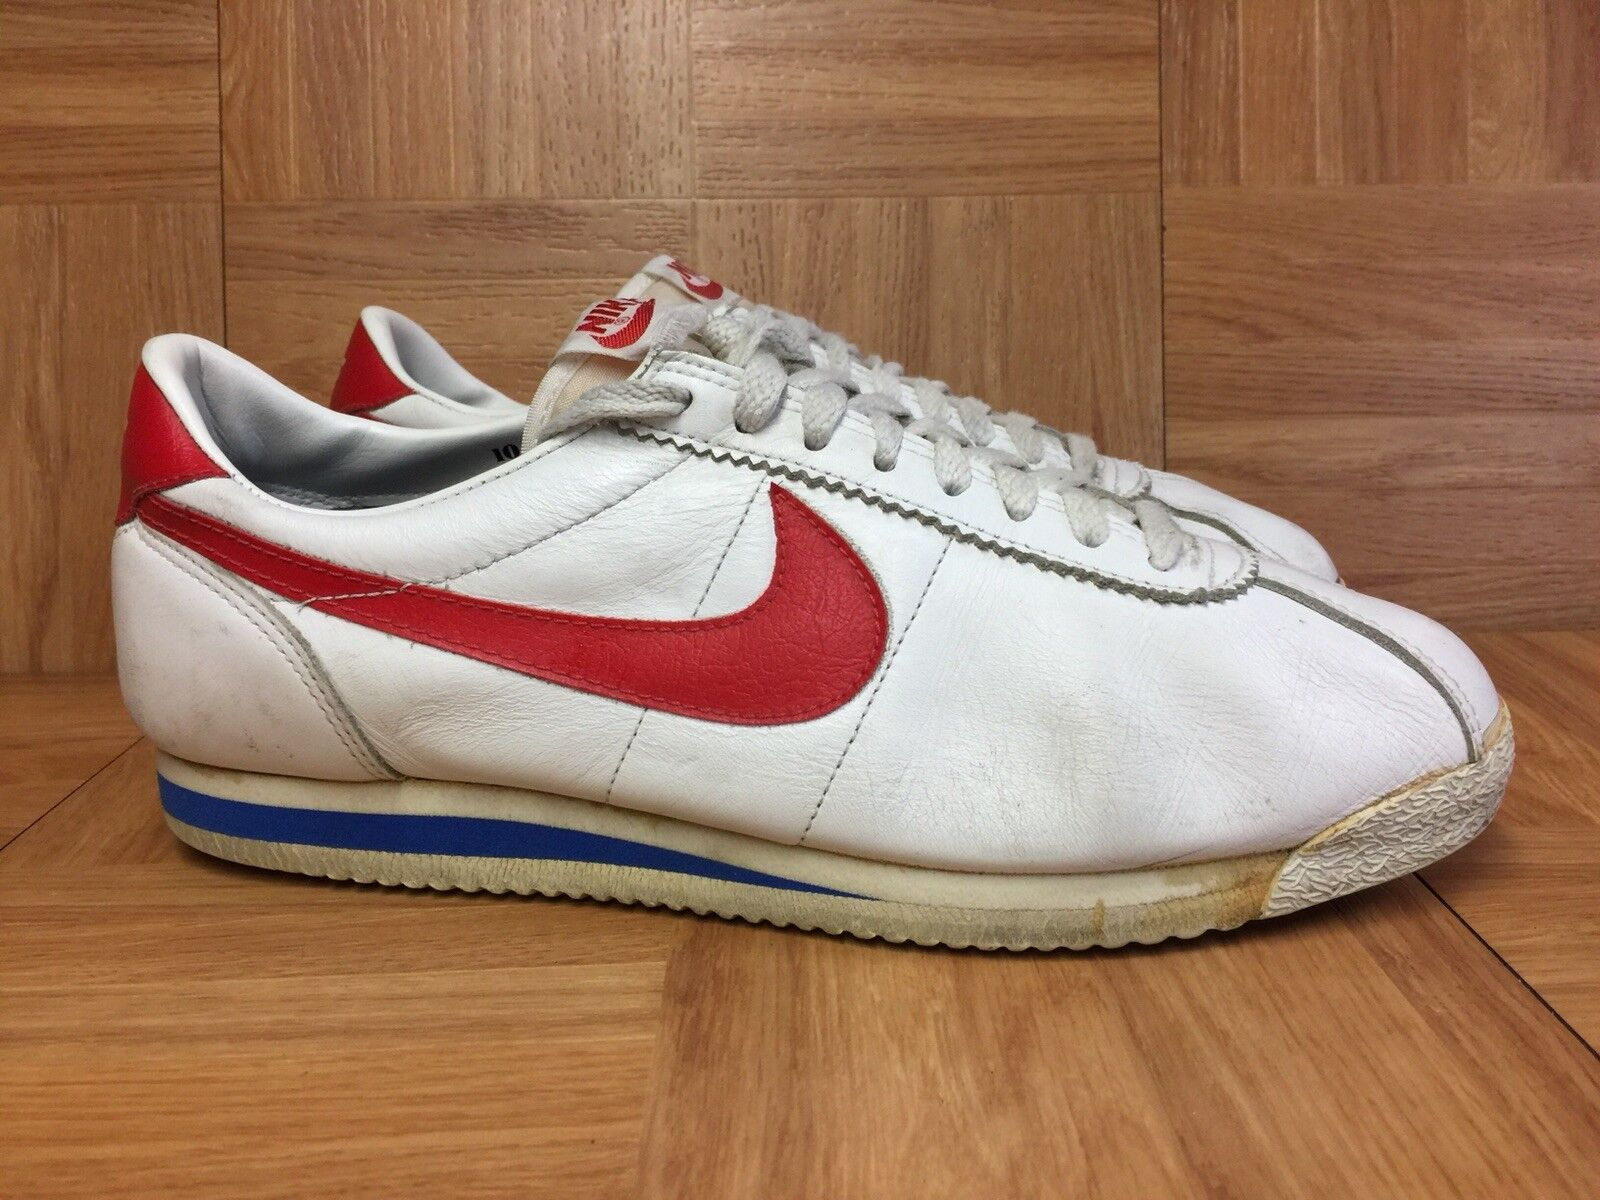 watch 08952 93307 Vintage🔥 Nike Cortez Forest Gump Size 10 White Leather Blue Red Original  1985